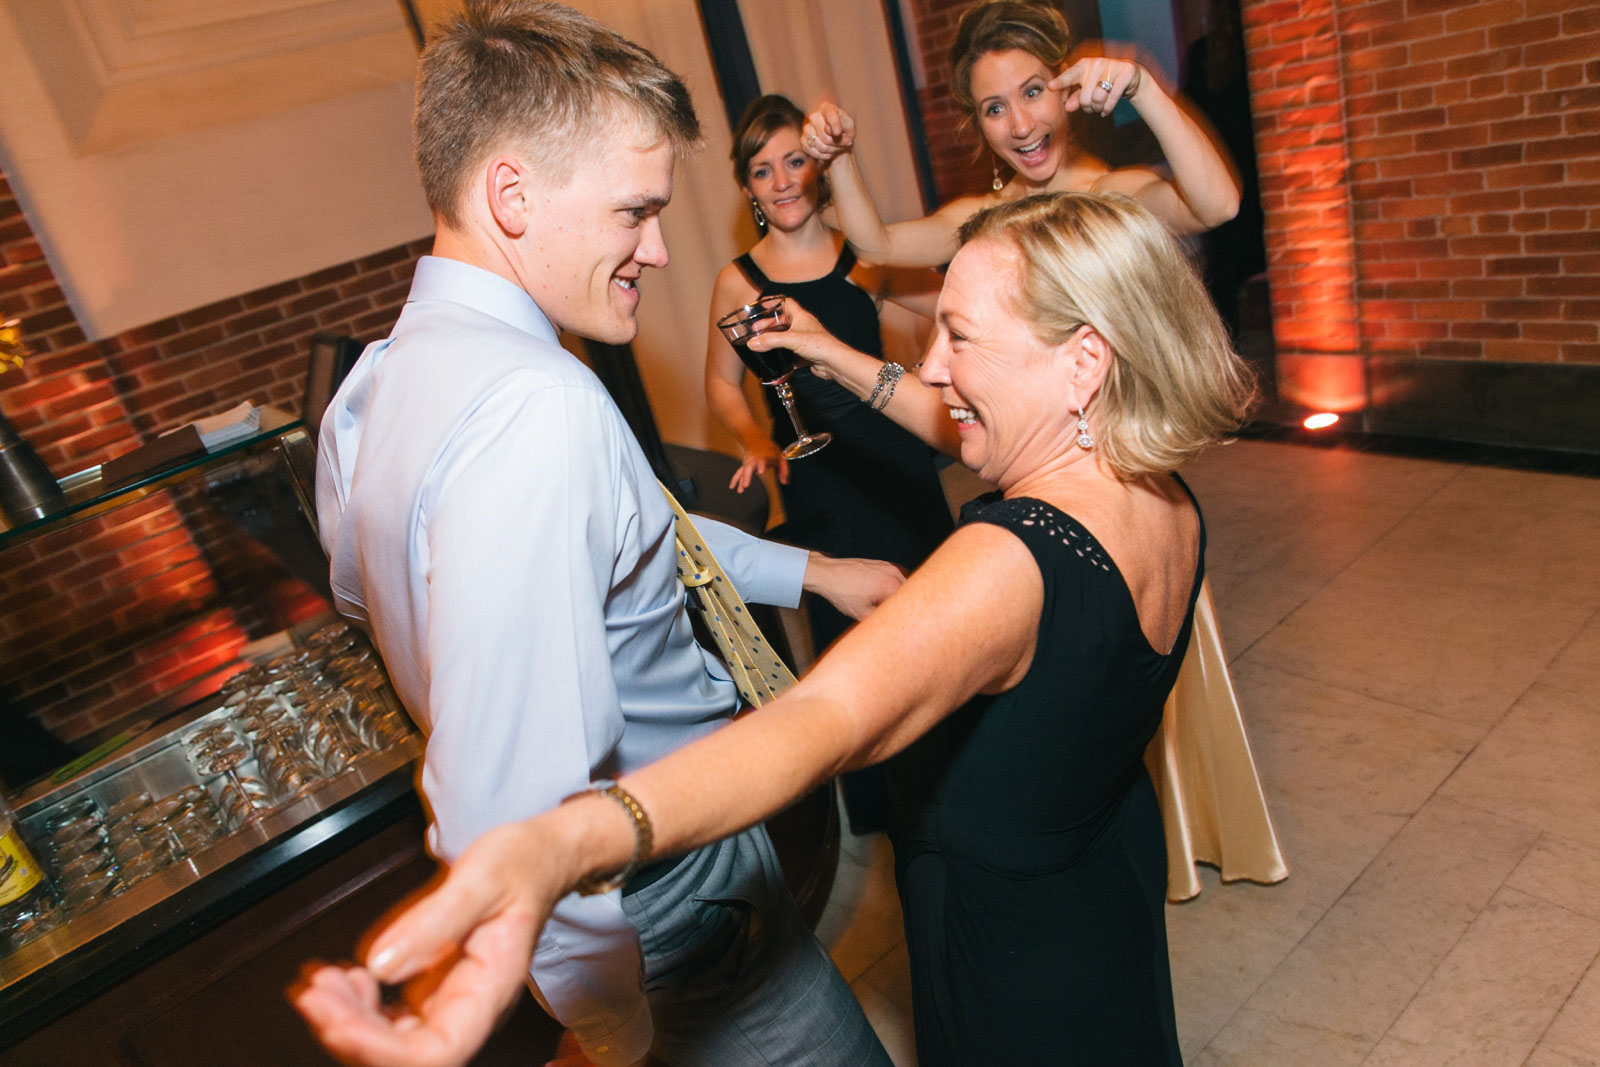 Wedding guests Breaking it down on the dance floor at Boston Public library wedding reception